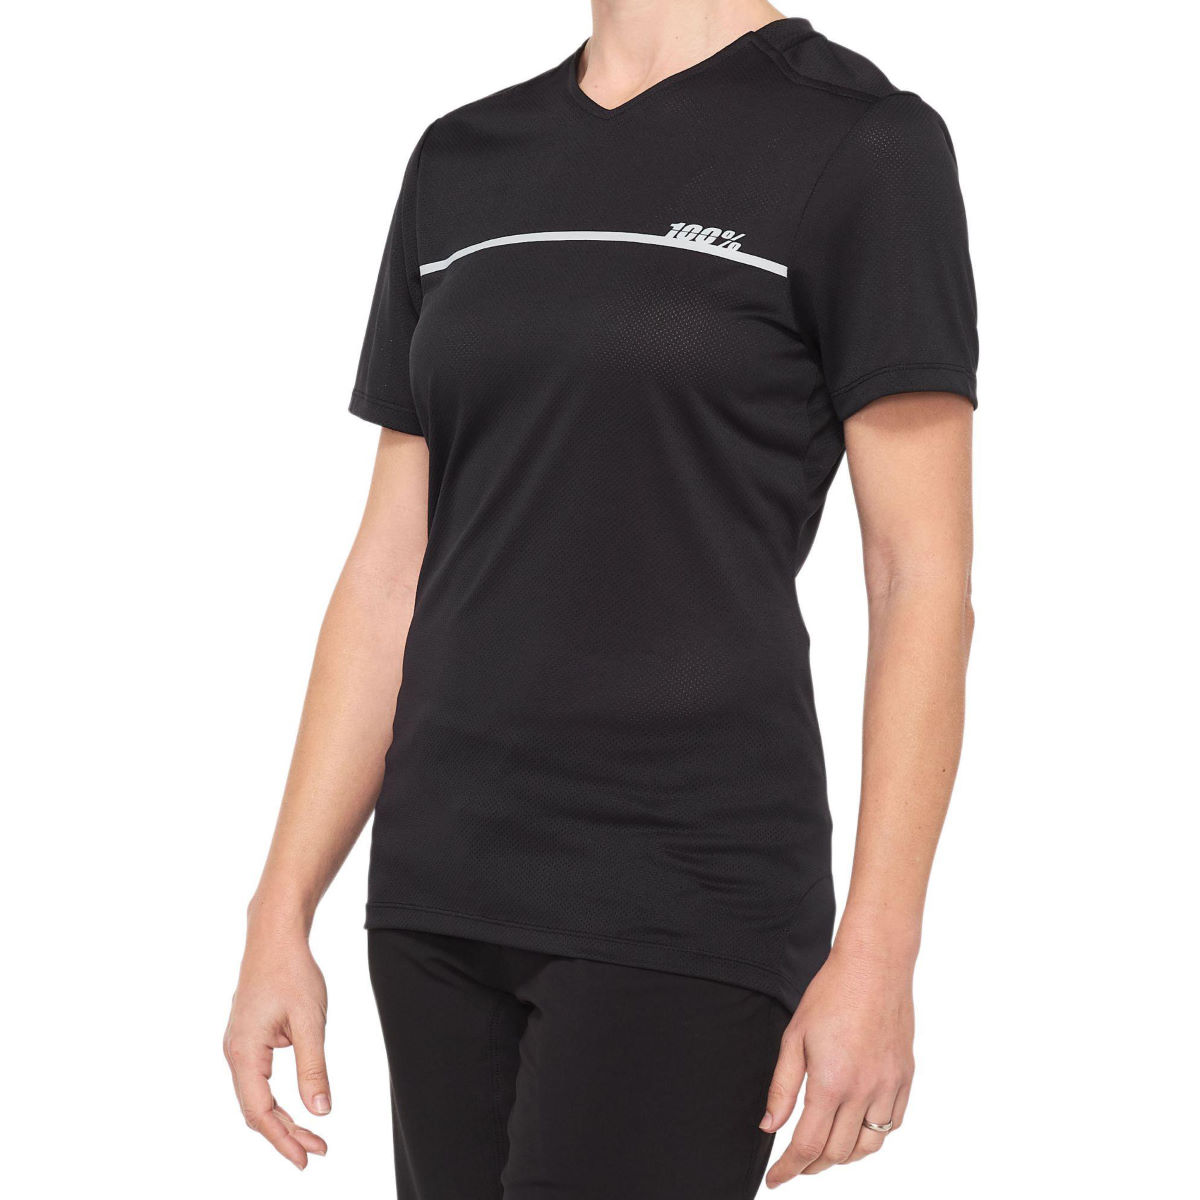 100% Womens Ridecamp Jersey - S Black/grey  Jerseys